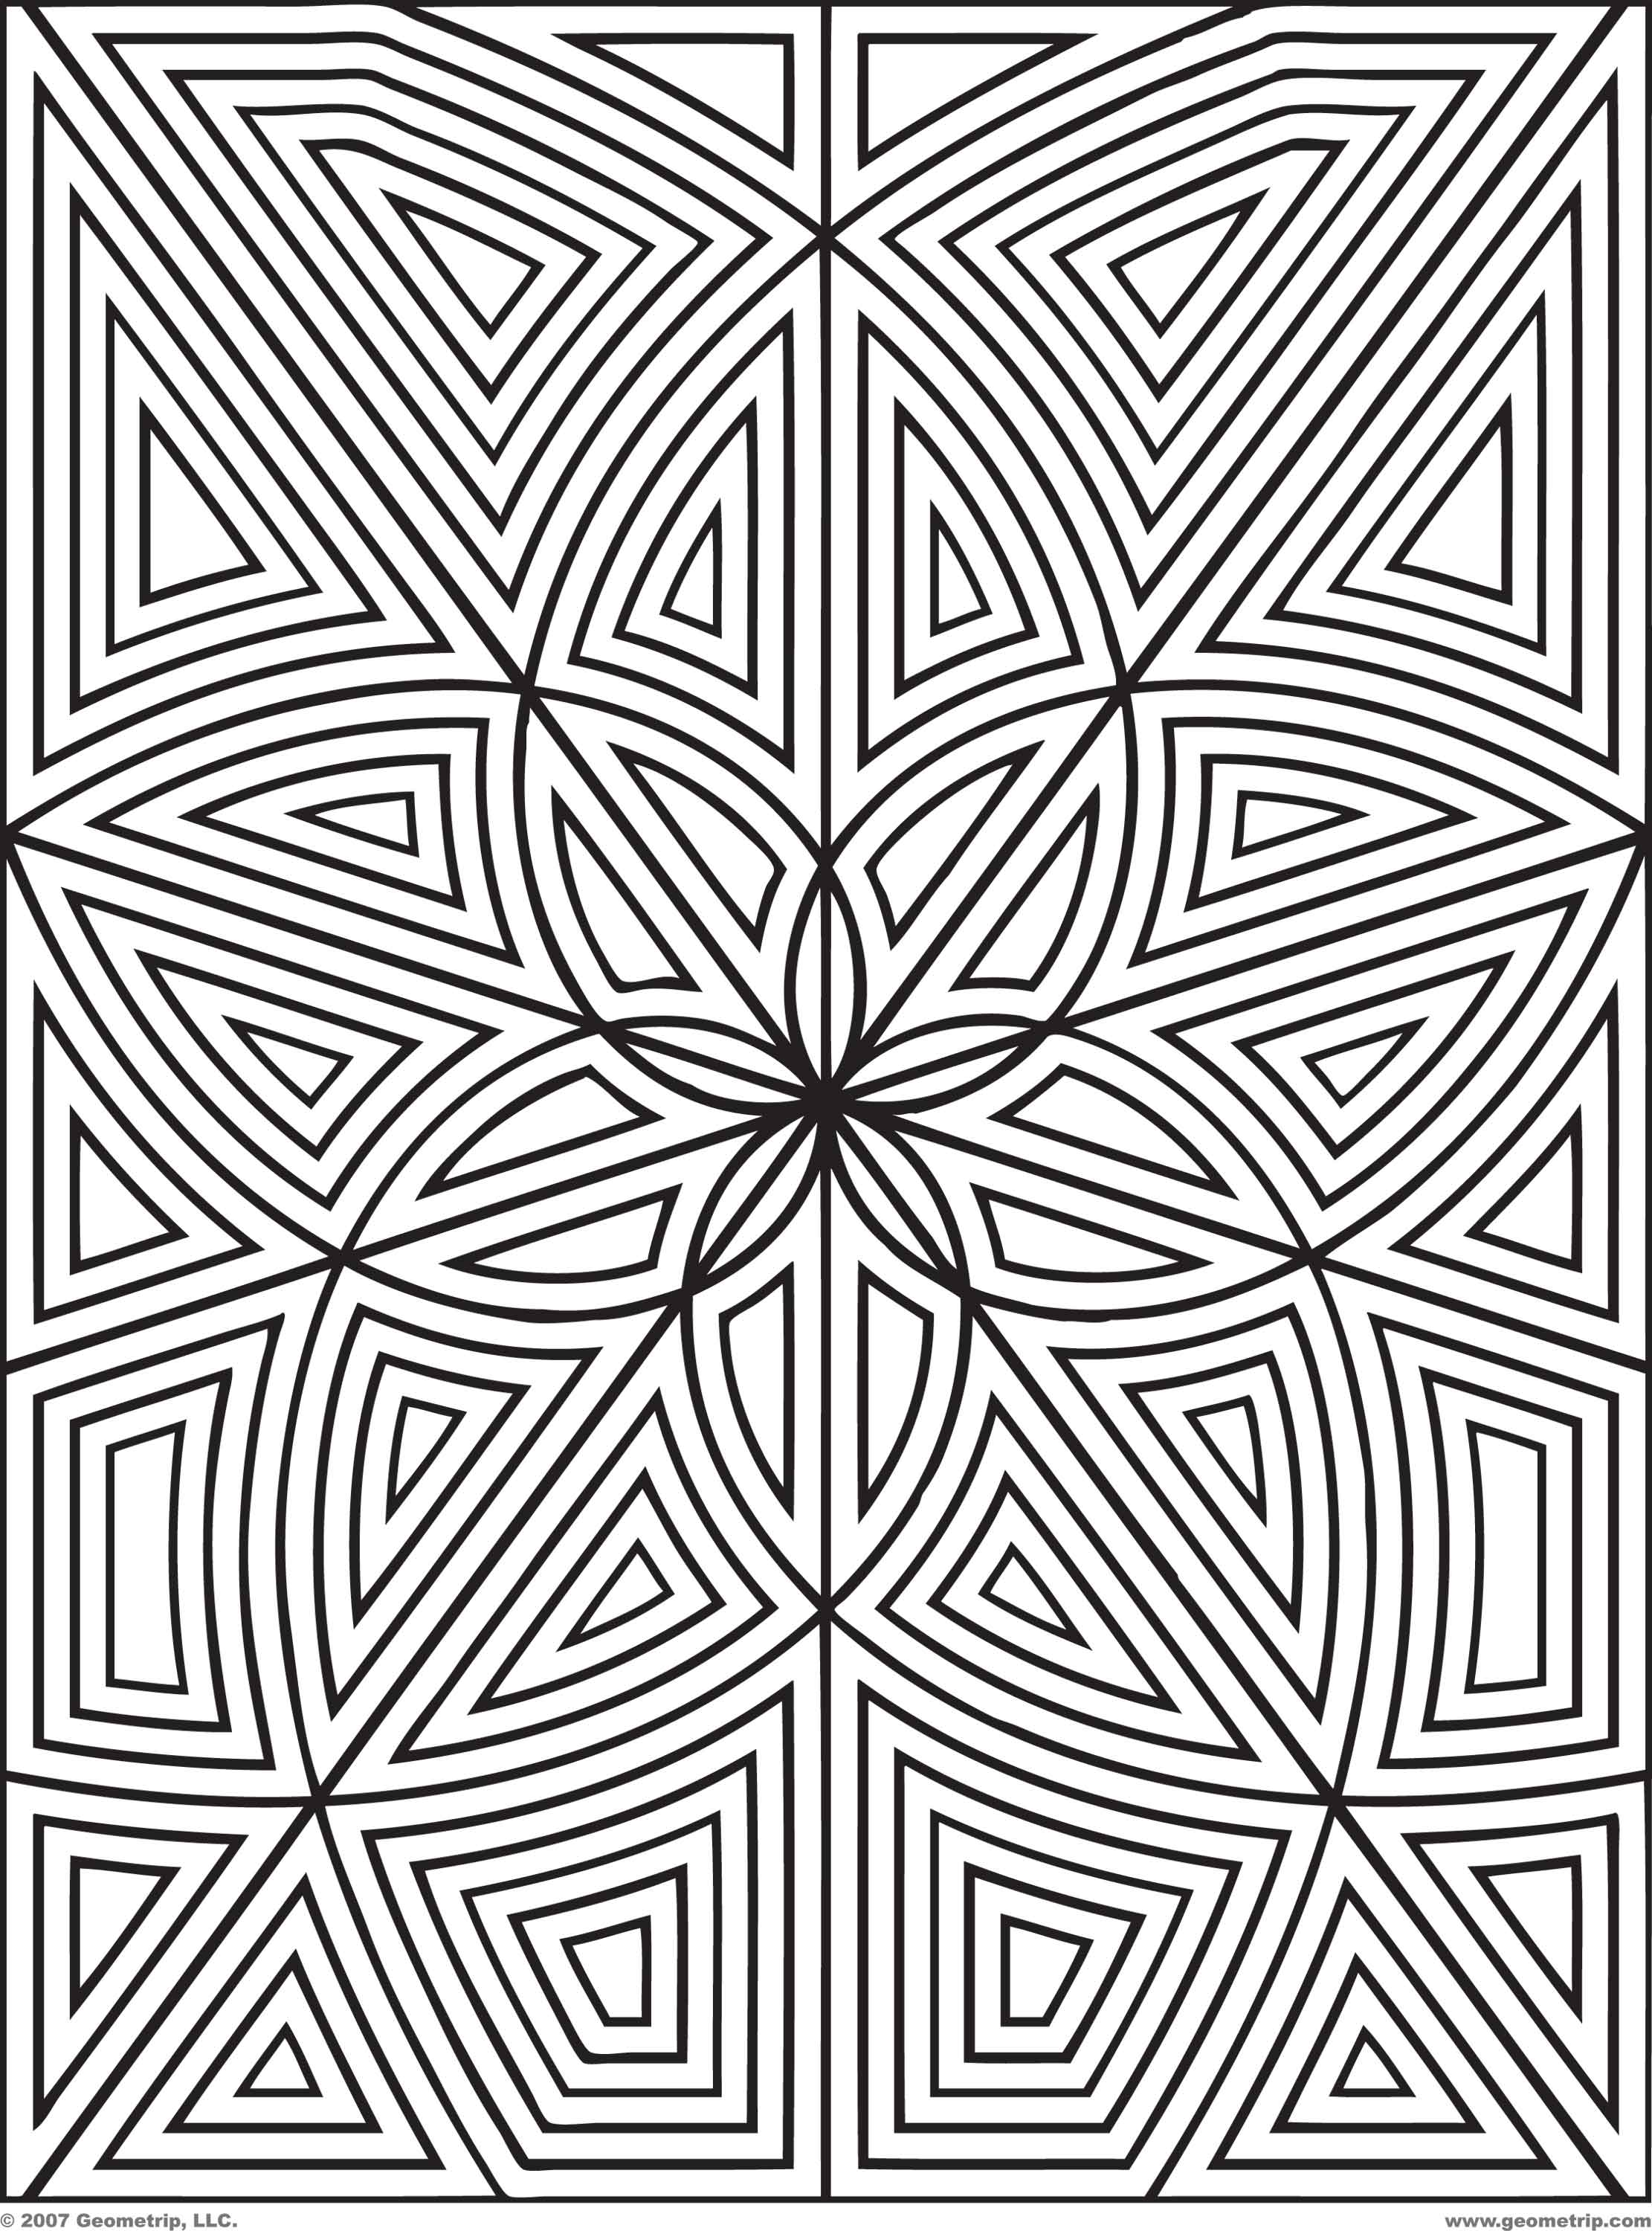 Abstract Shapes Coloring Pages : Abstract shapes coloring pages home